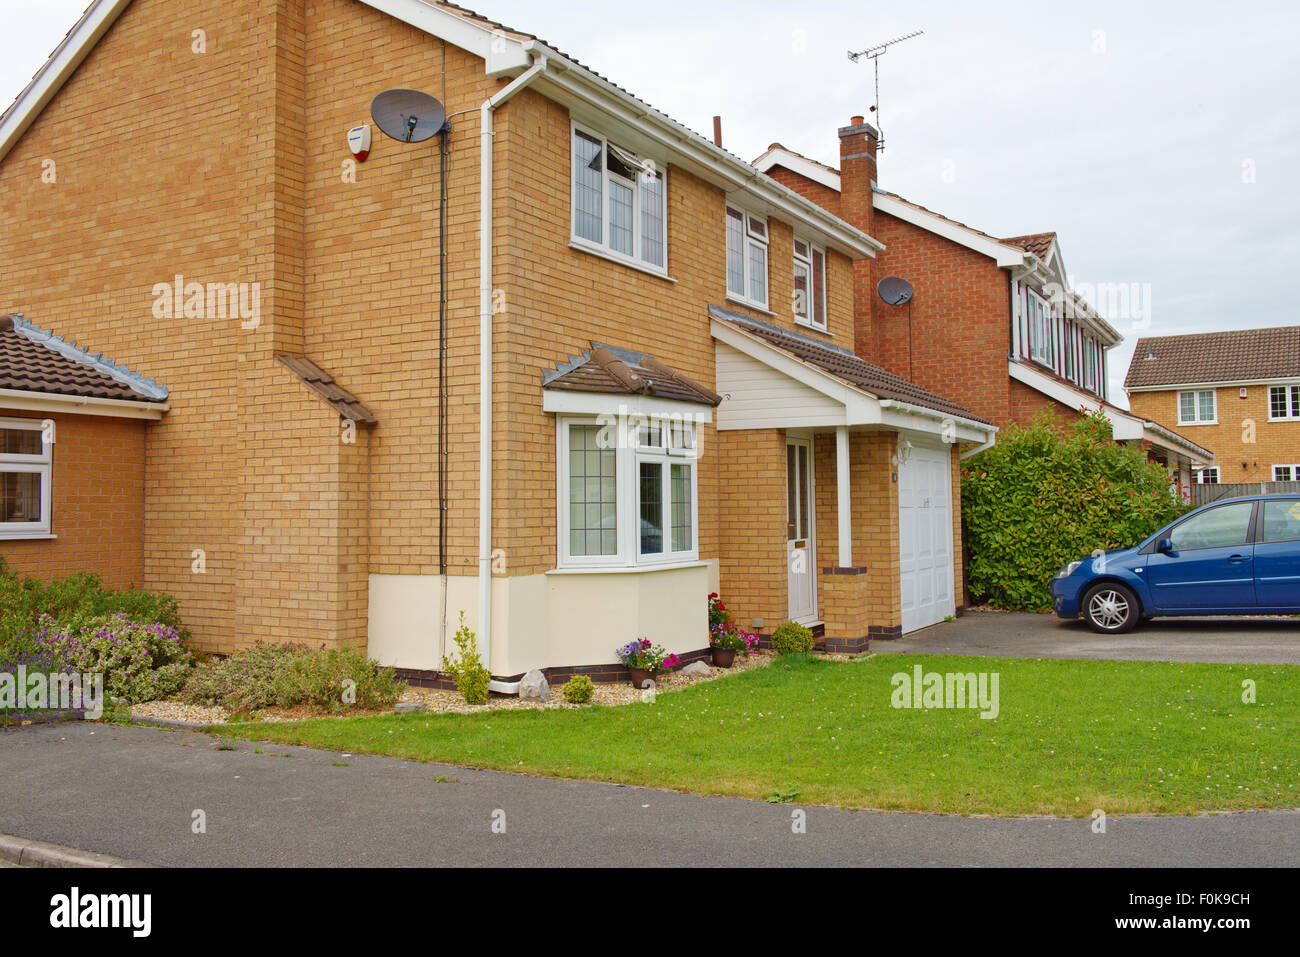 Maisons de banlieue moderne sur housing estate stapleford derbyshire photo stock